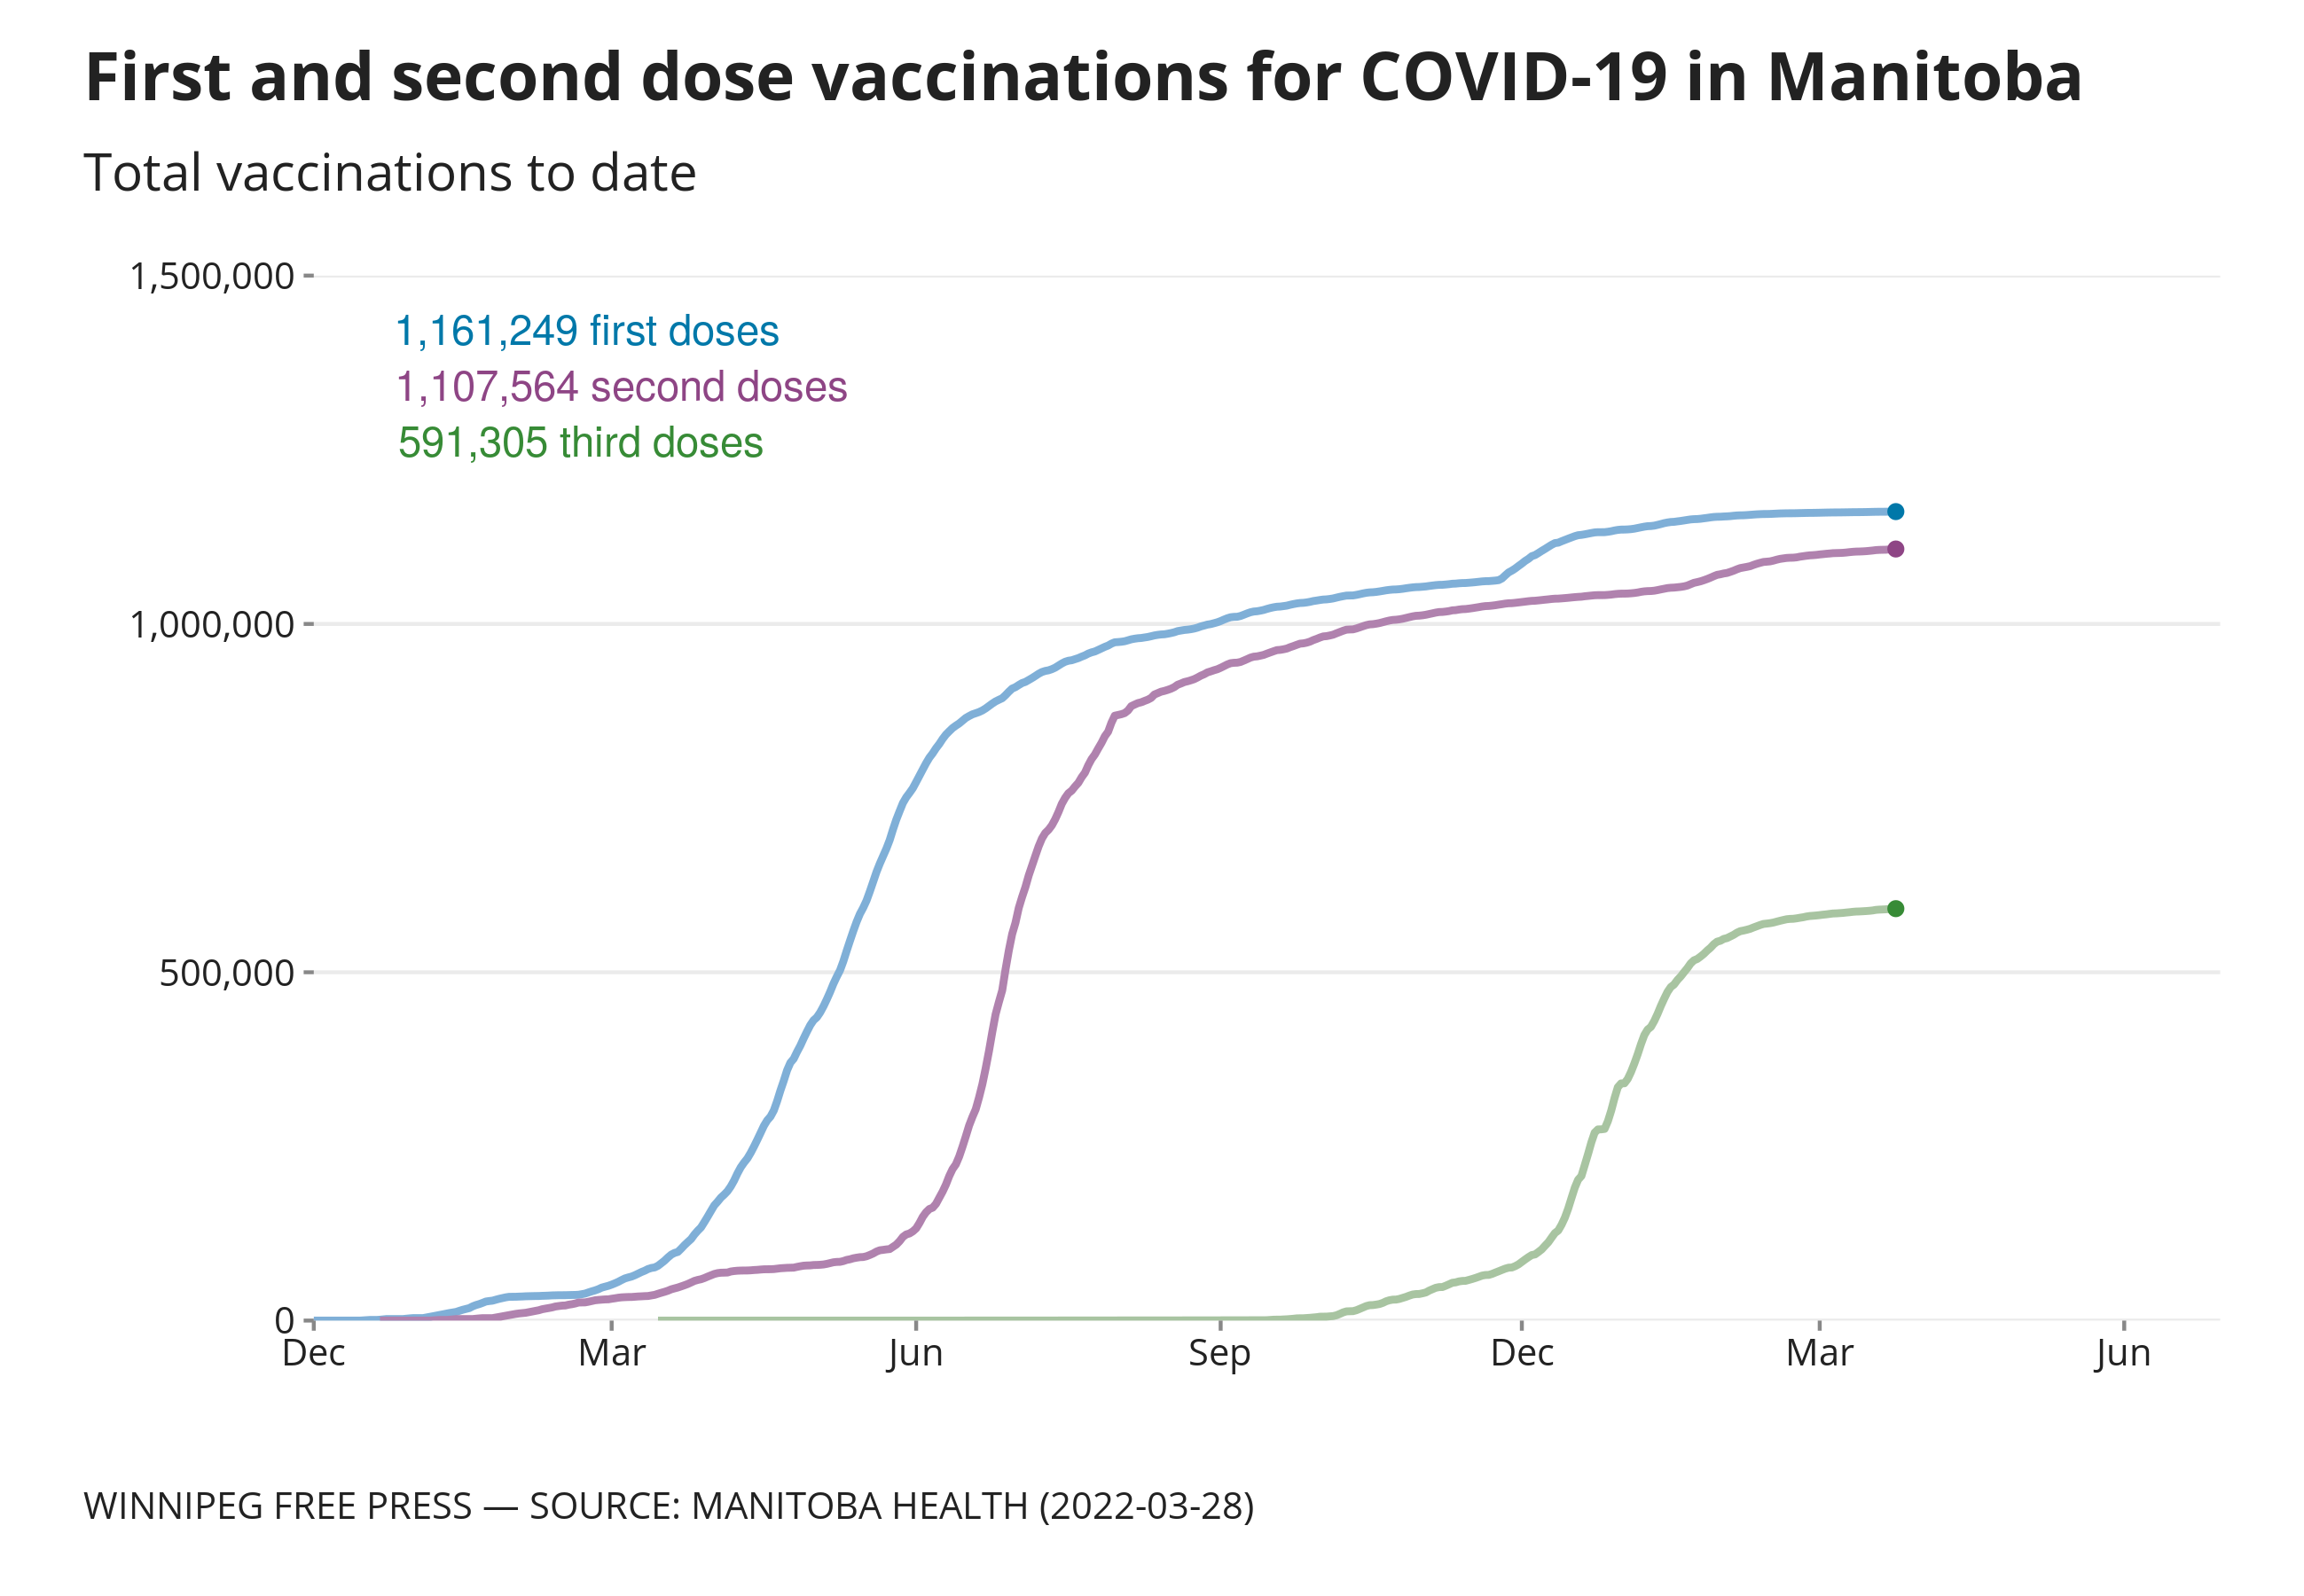 Graphic showing cumulative COVID-19 vaccine doses administered in Manitoba